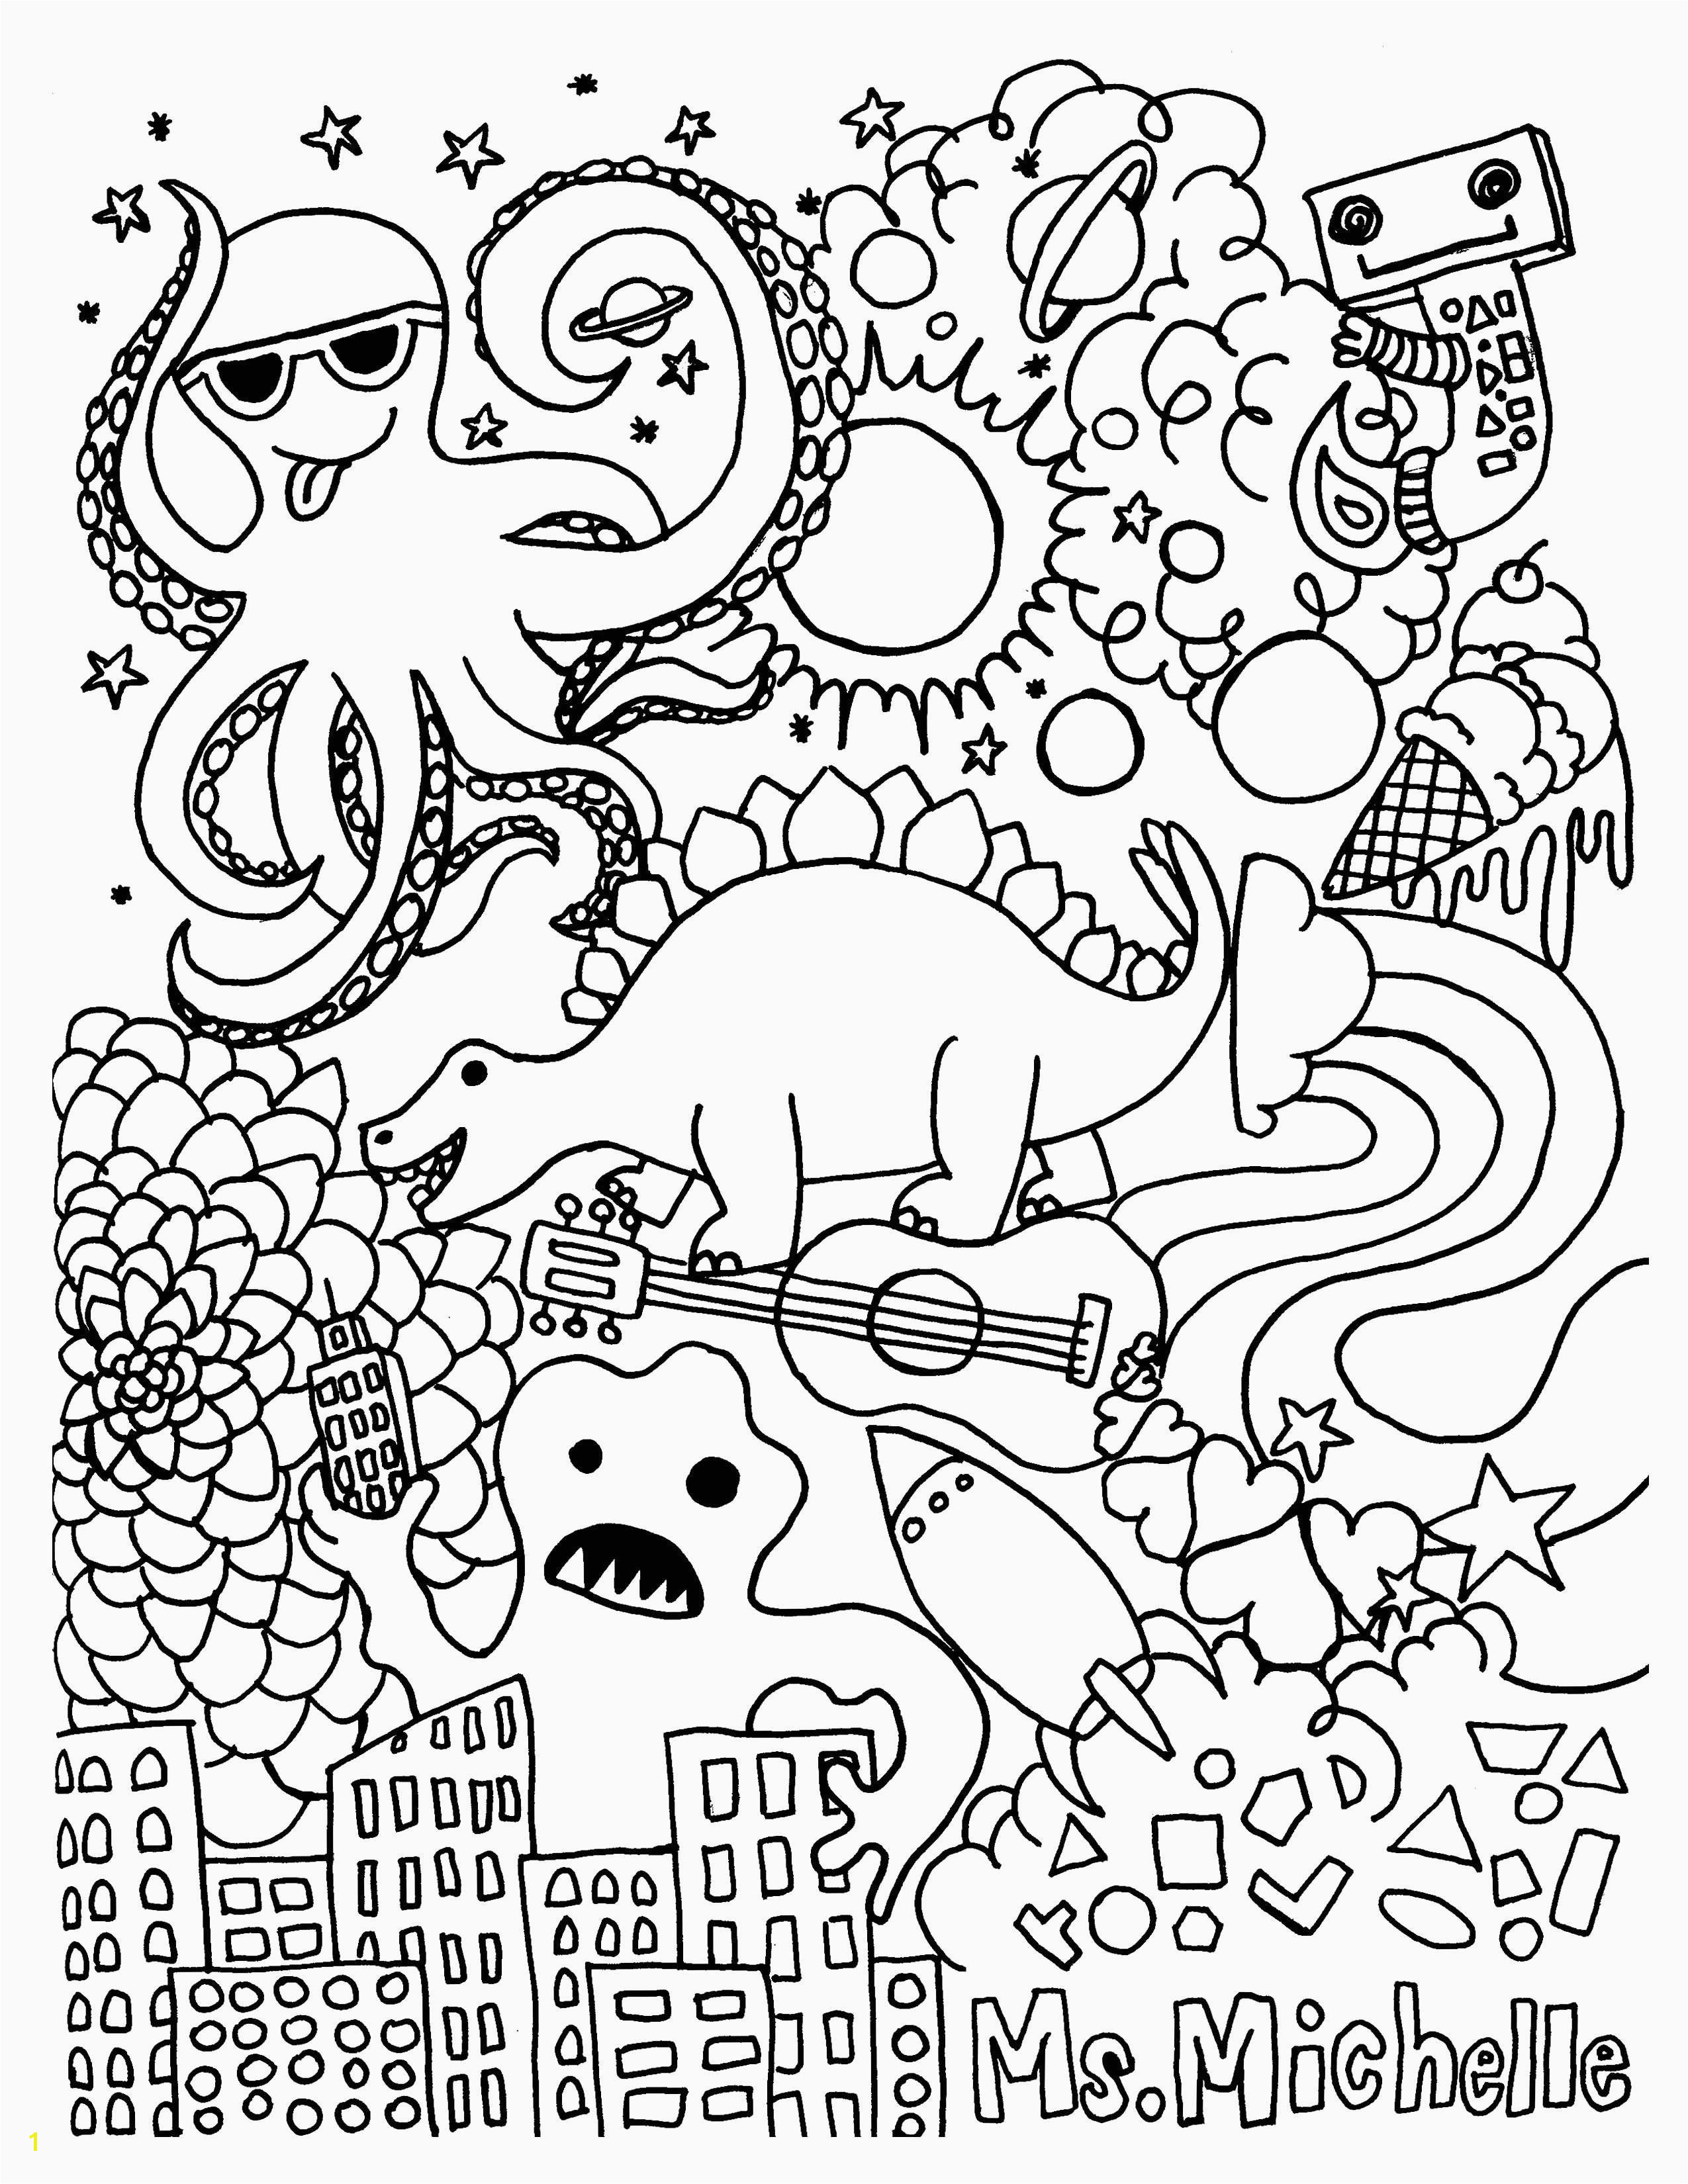 Mermaid Coloring Pages Free Coloring Pages for Halloween Unique Best Coloring Page Adult Od 6r